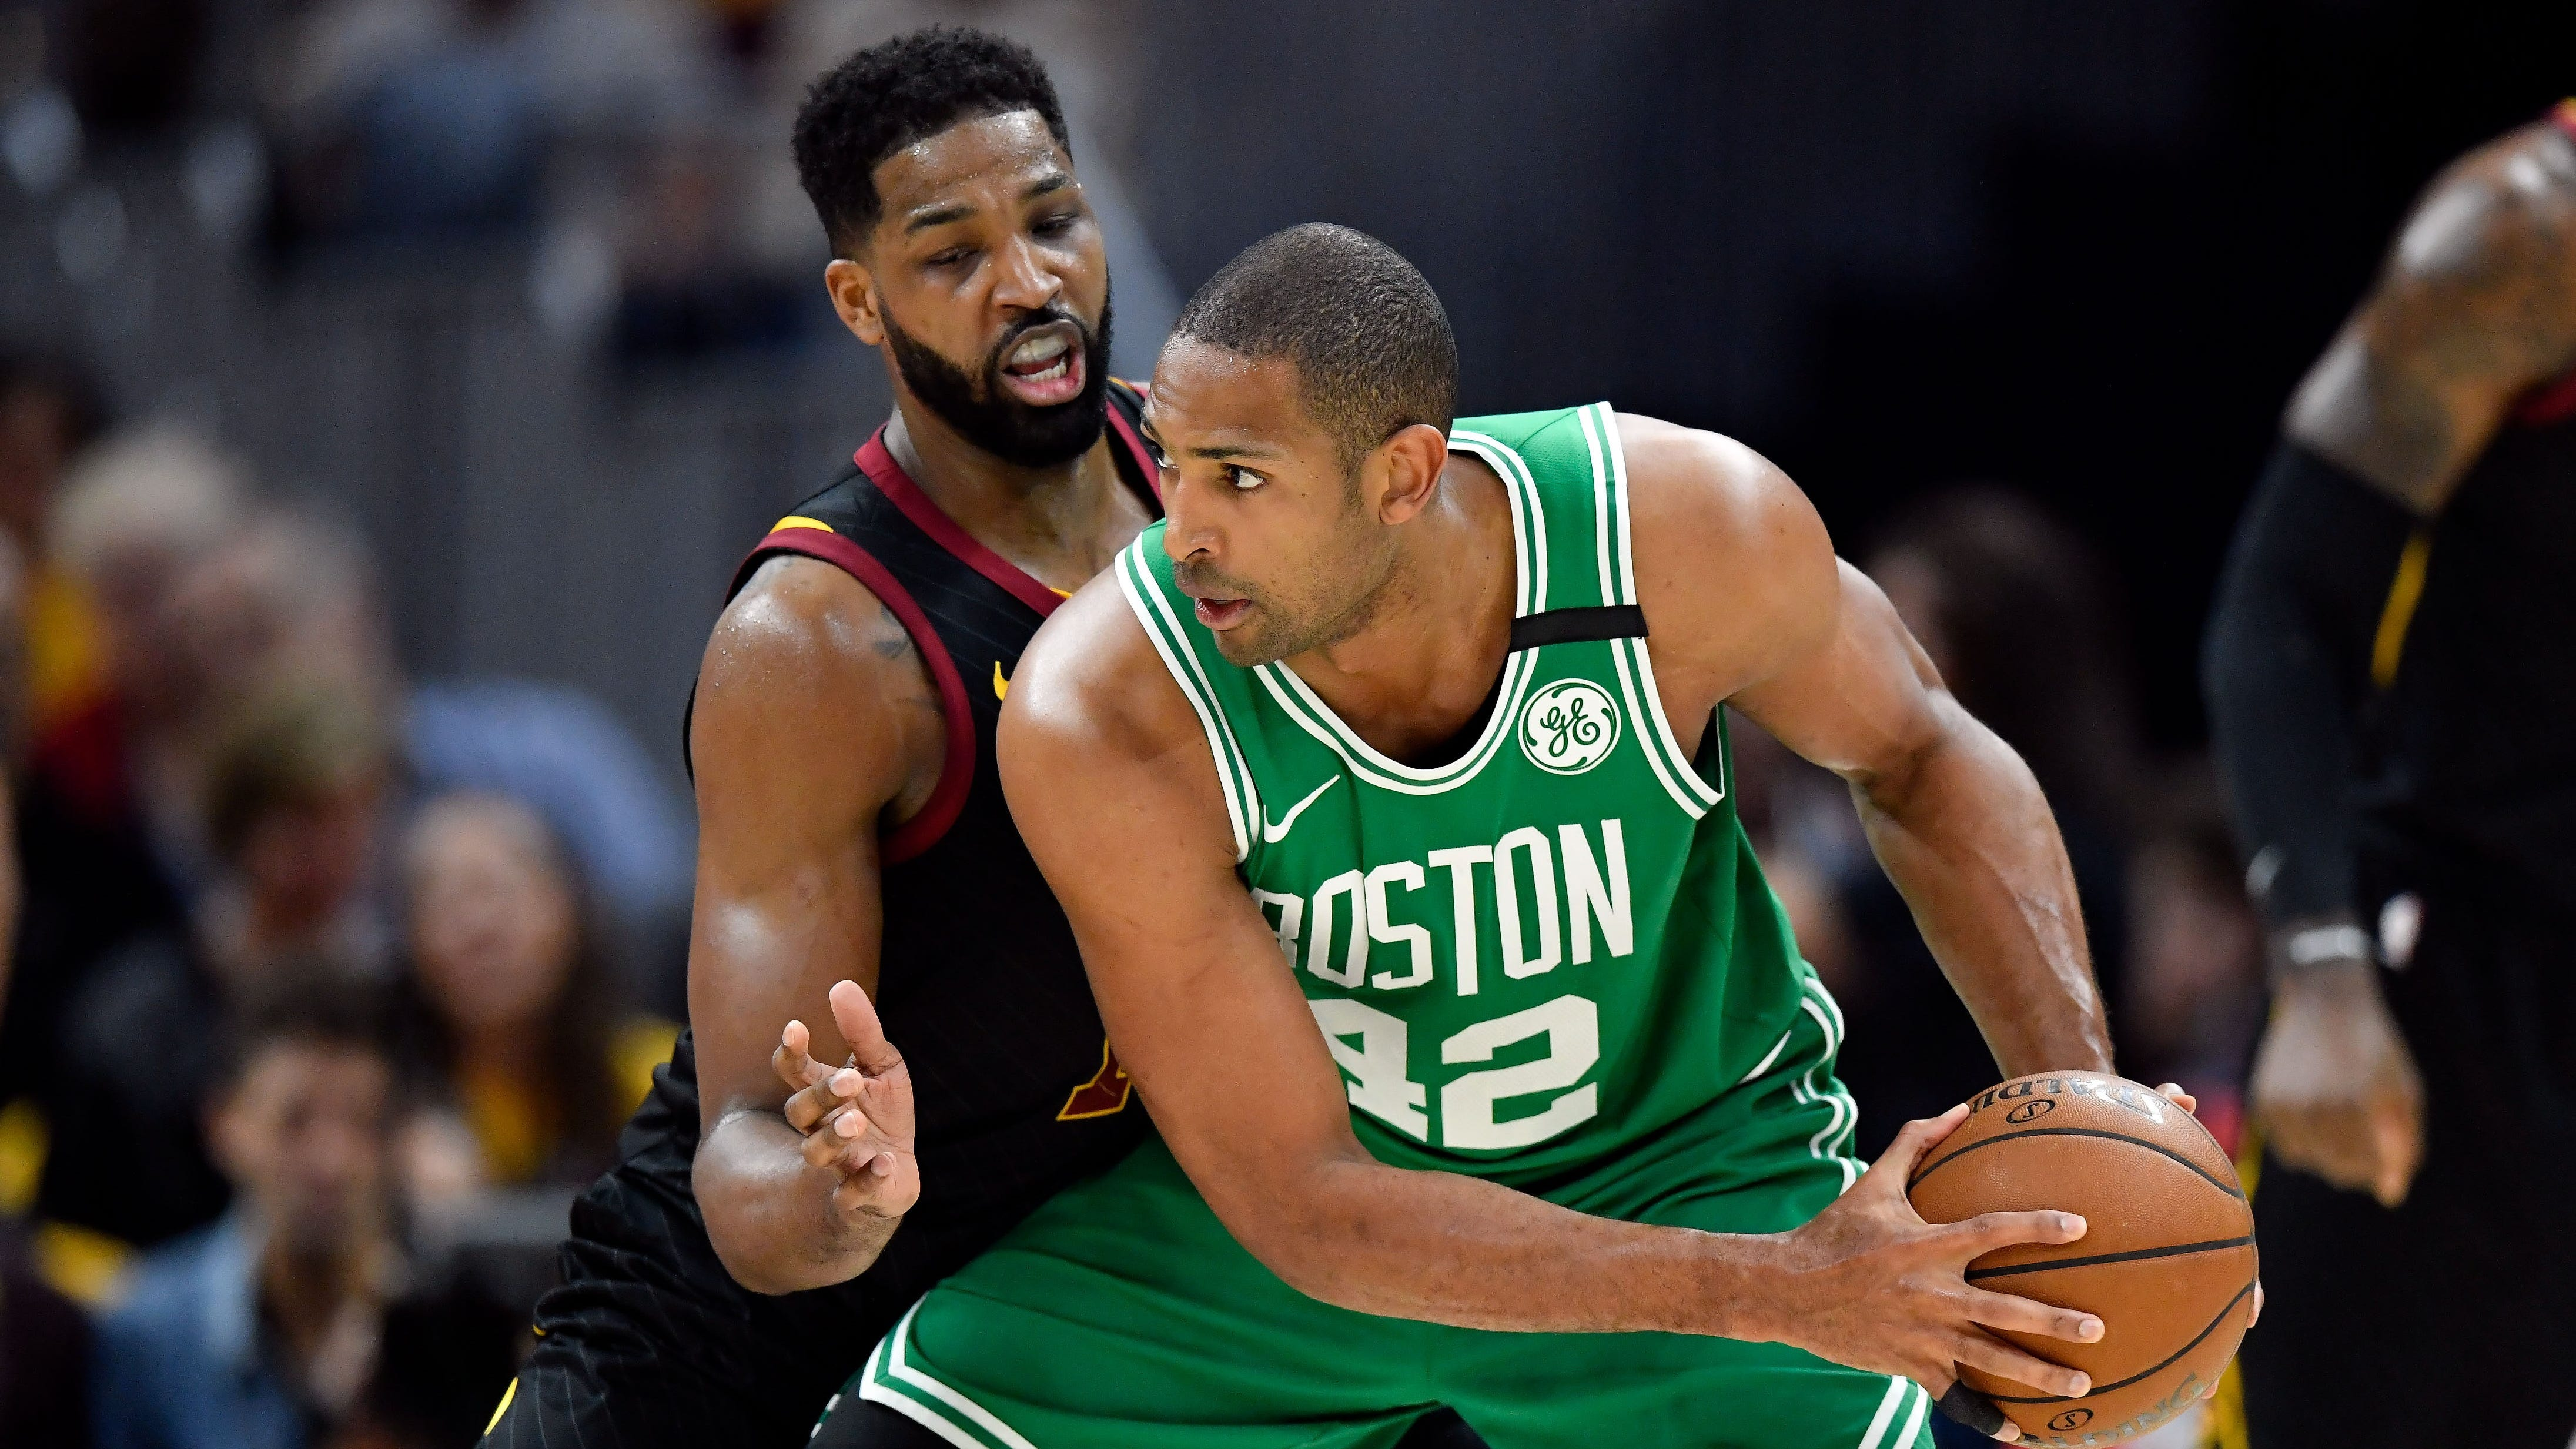 Tristan Thompson: Cavaliers still the team to beat in East without LeBron James